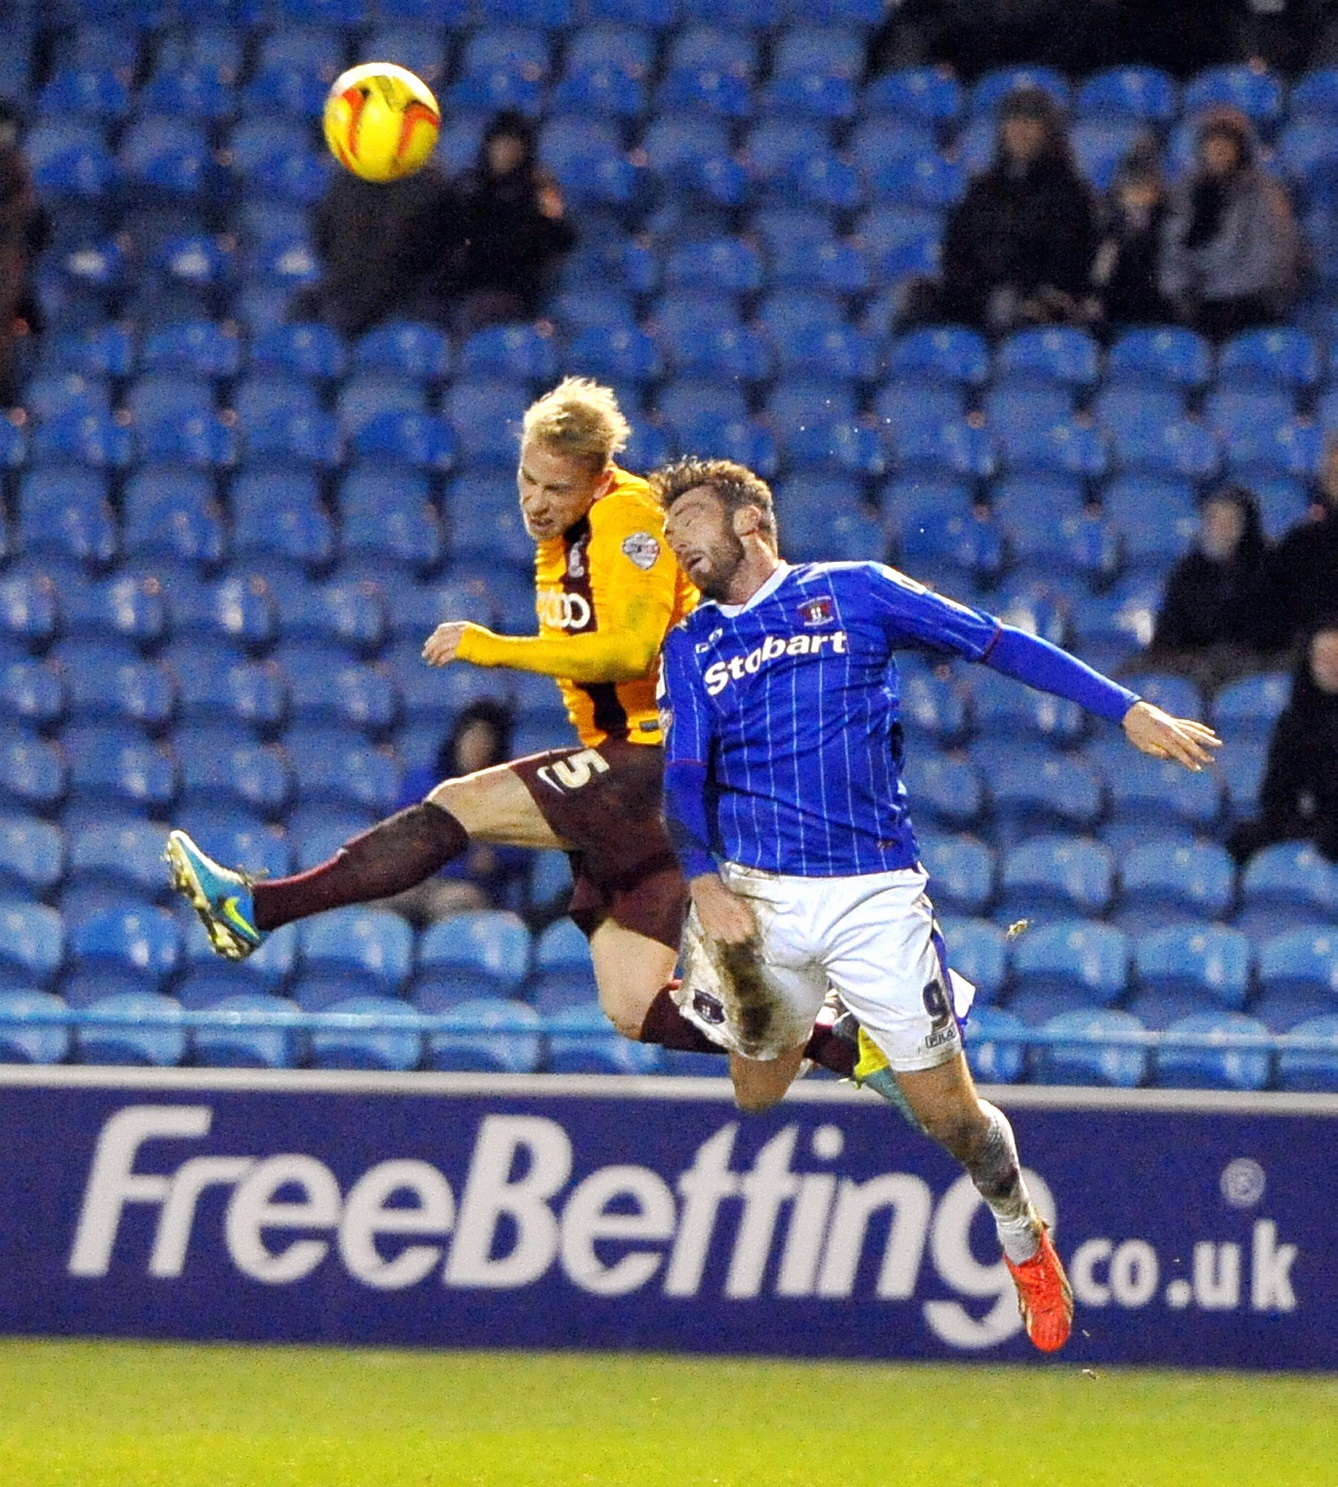 Andrew Davies in action during City's midweek defeat at Carlisle